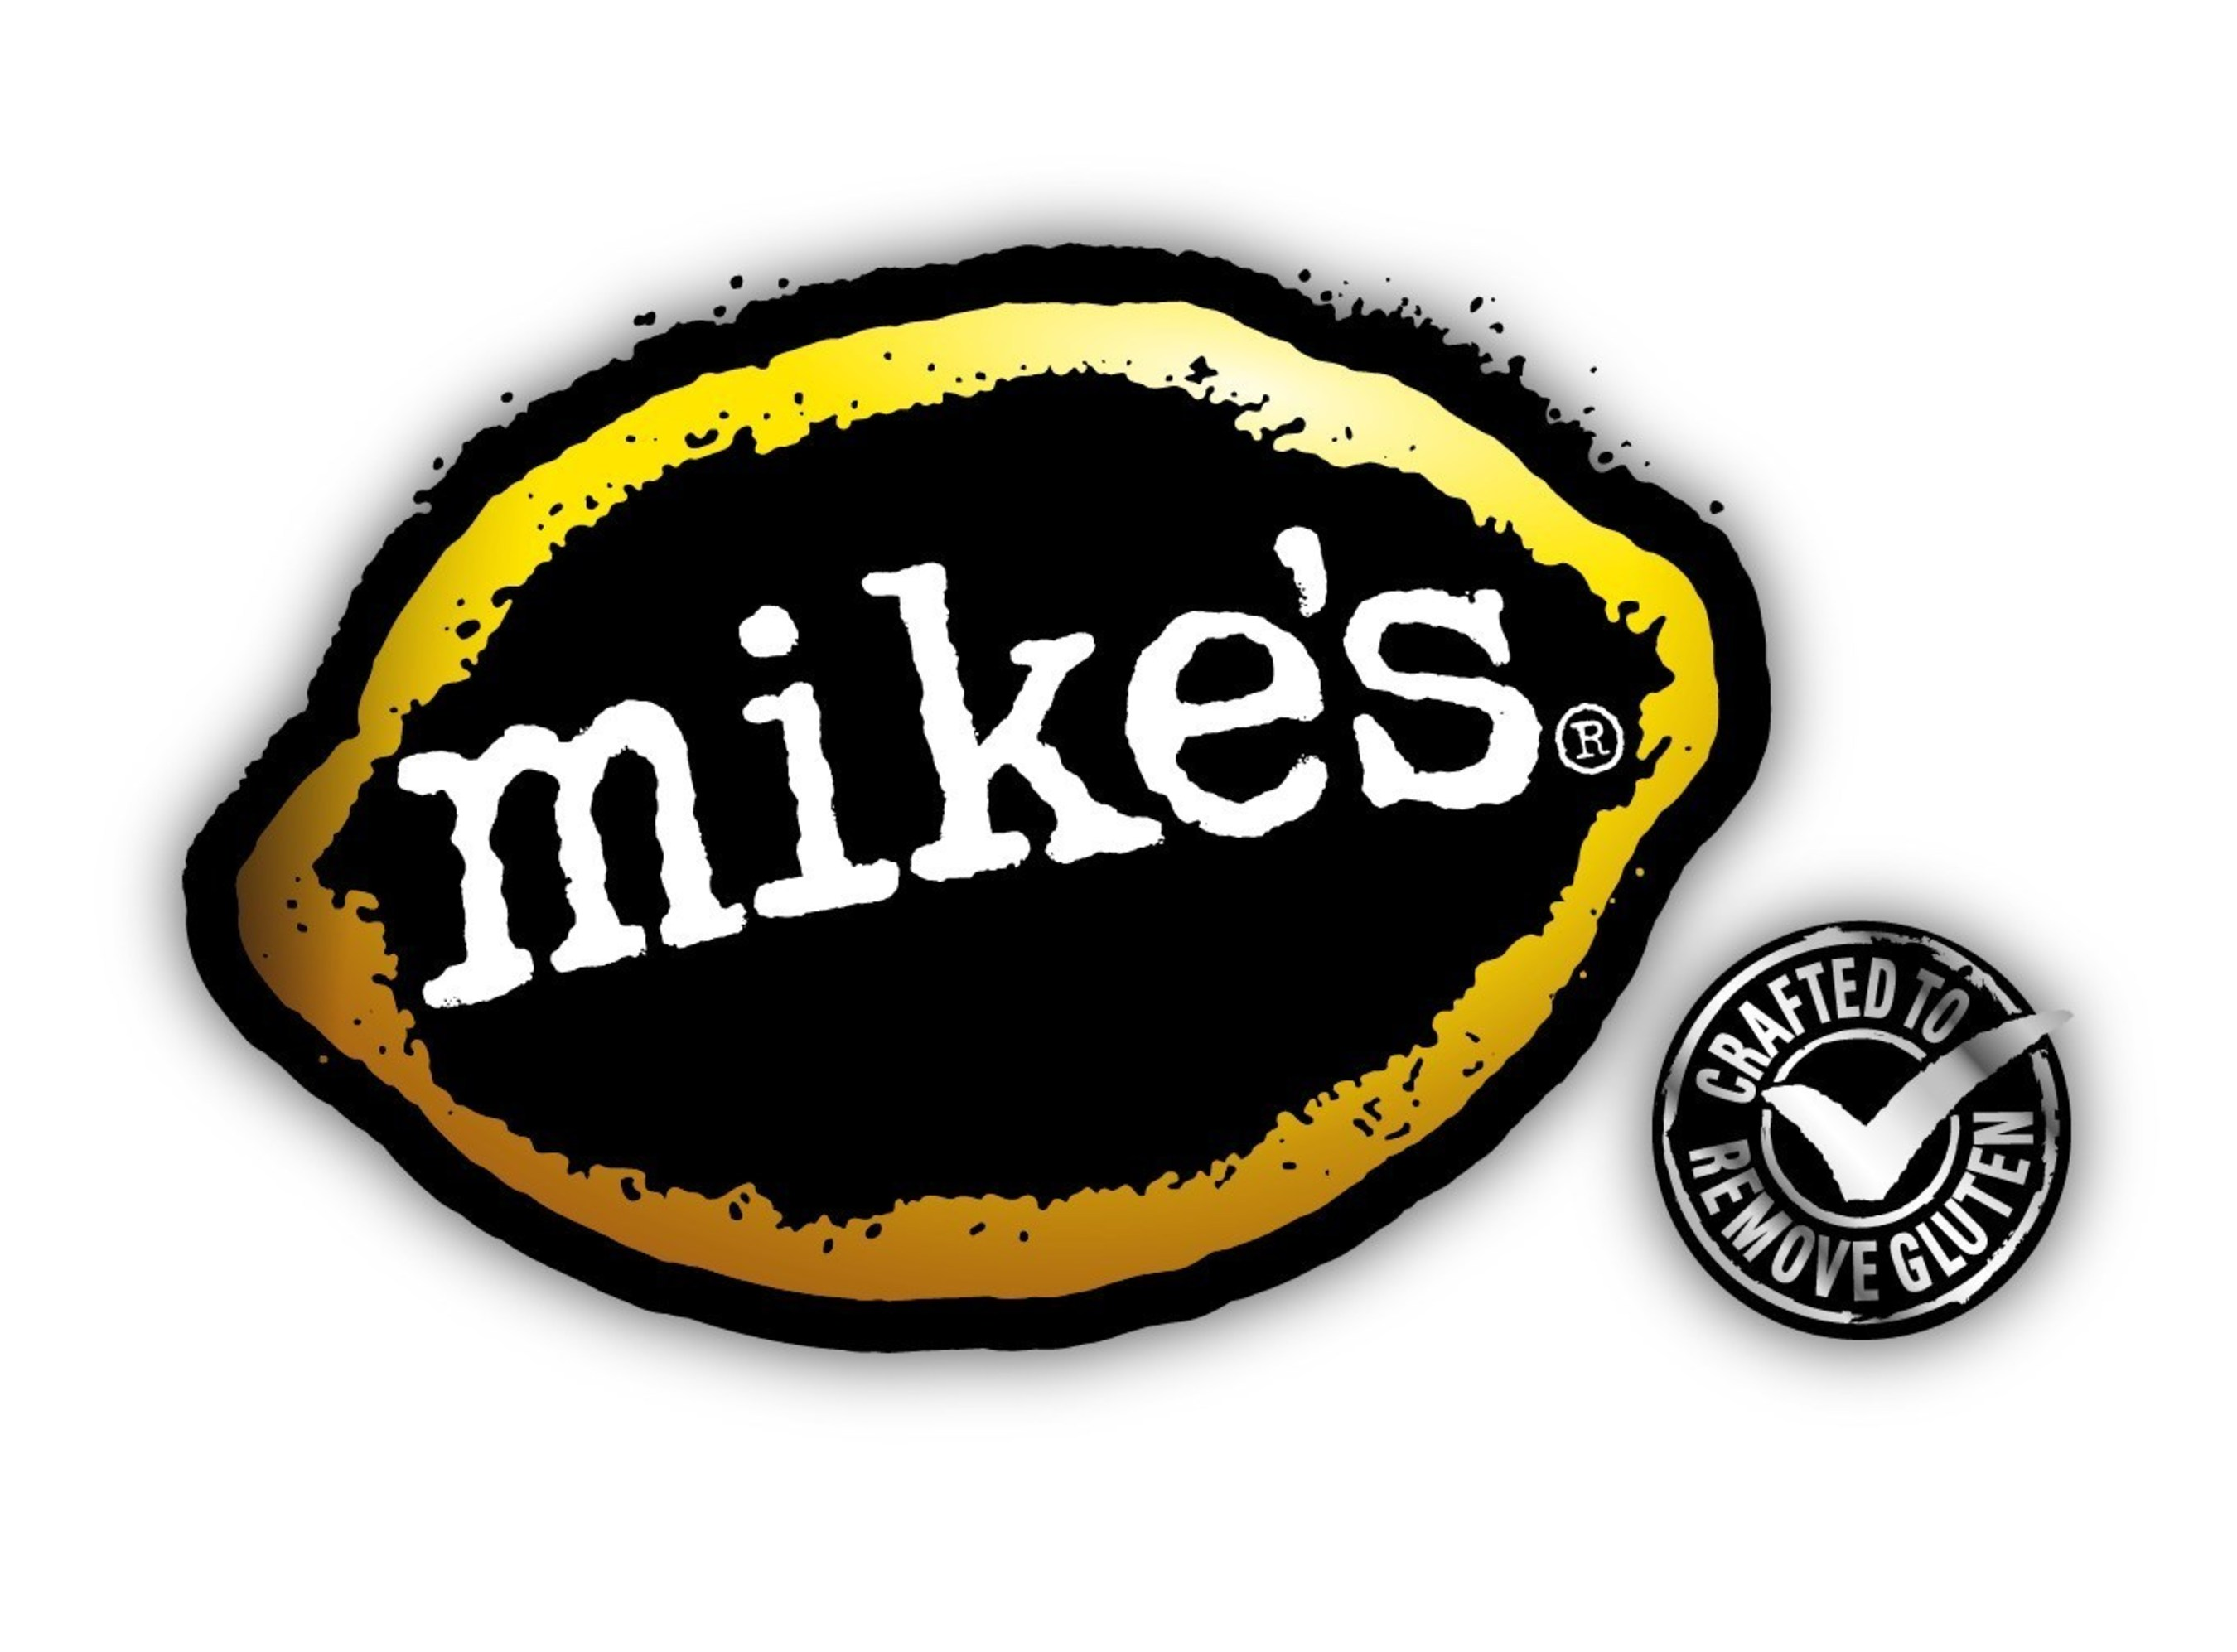 Mike\'s Hard Lemonade Co. Introduces New \'Crafted to Remove.